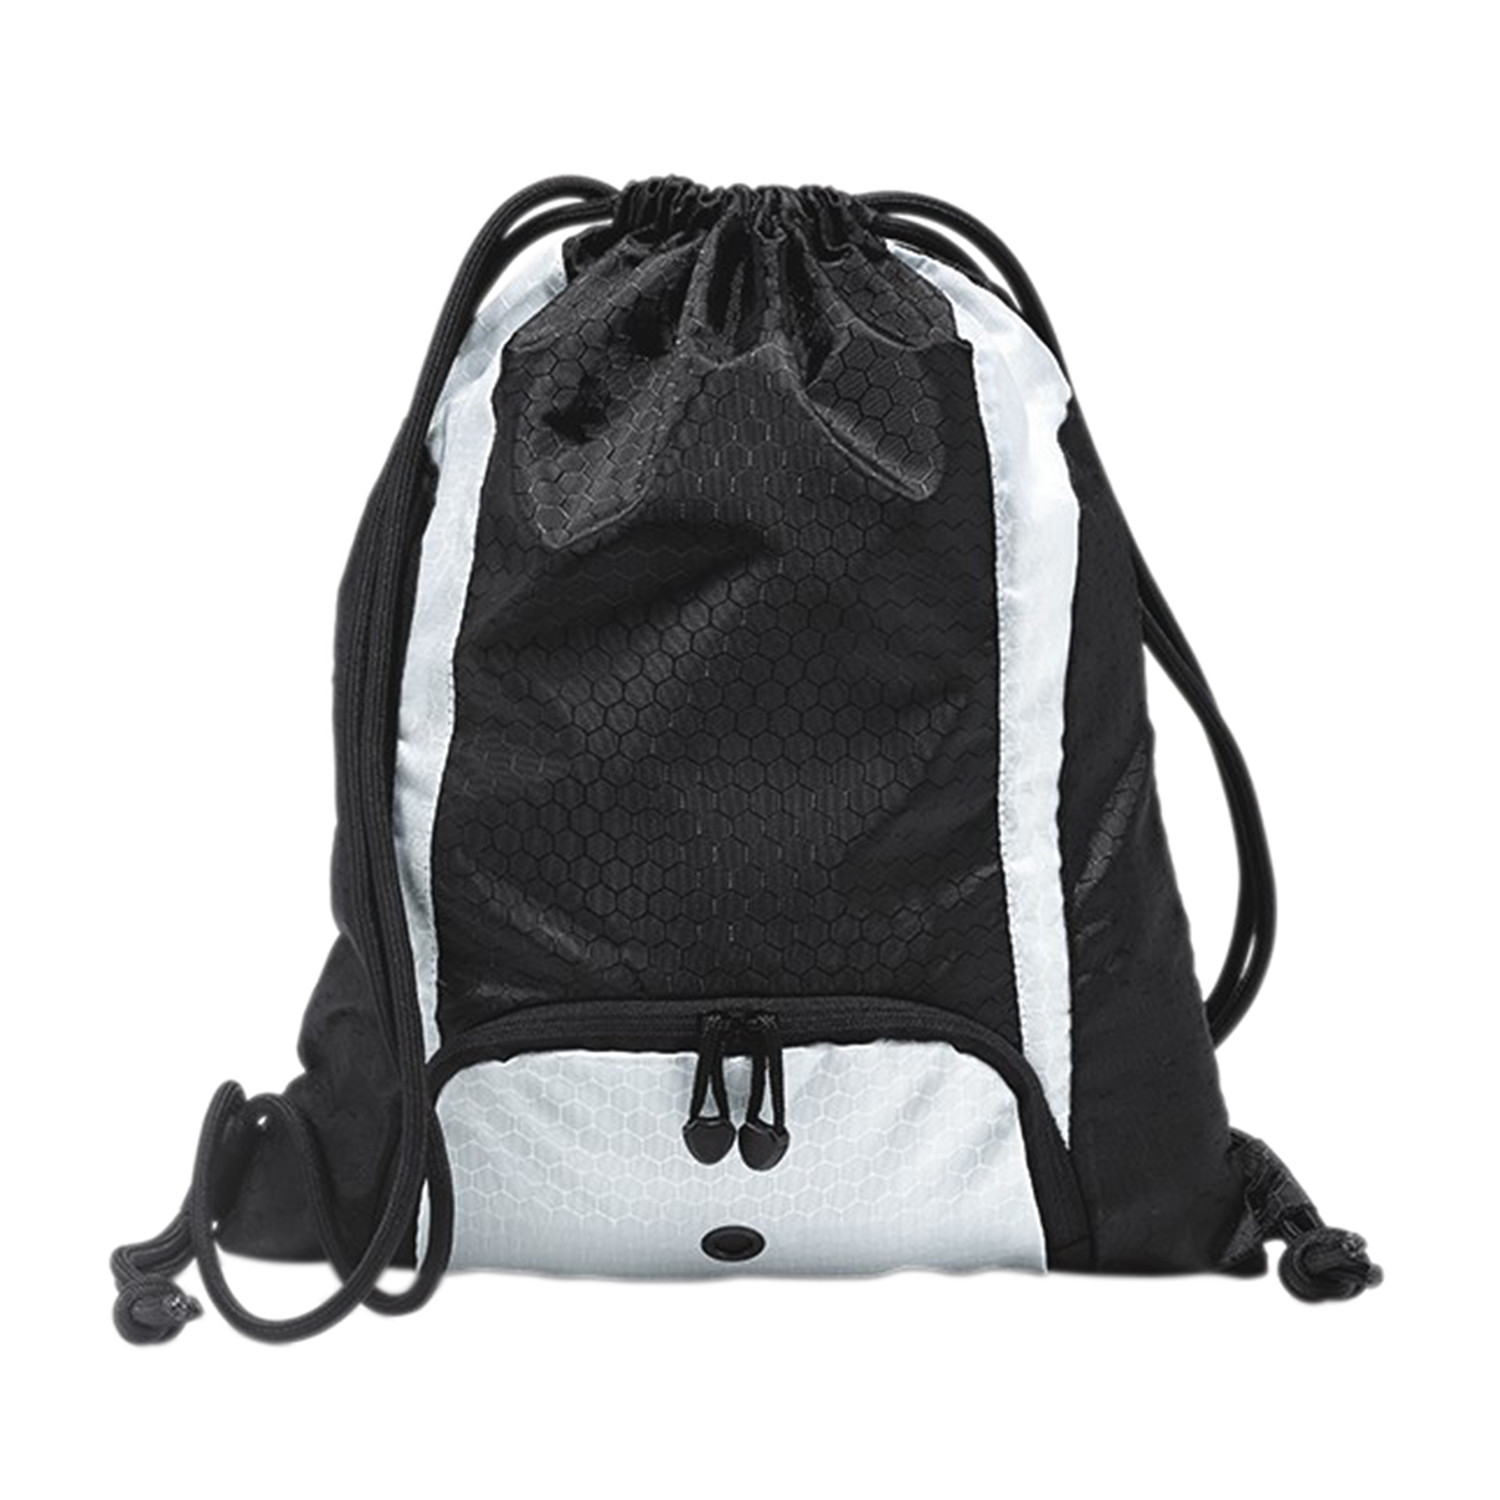 River's End 8890 - Honeycomb Drawstring Backpack